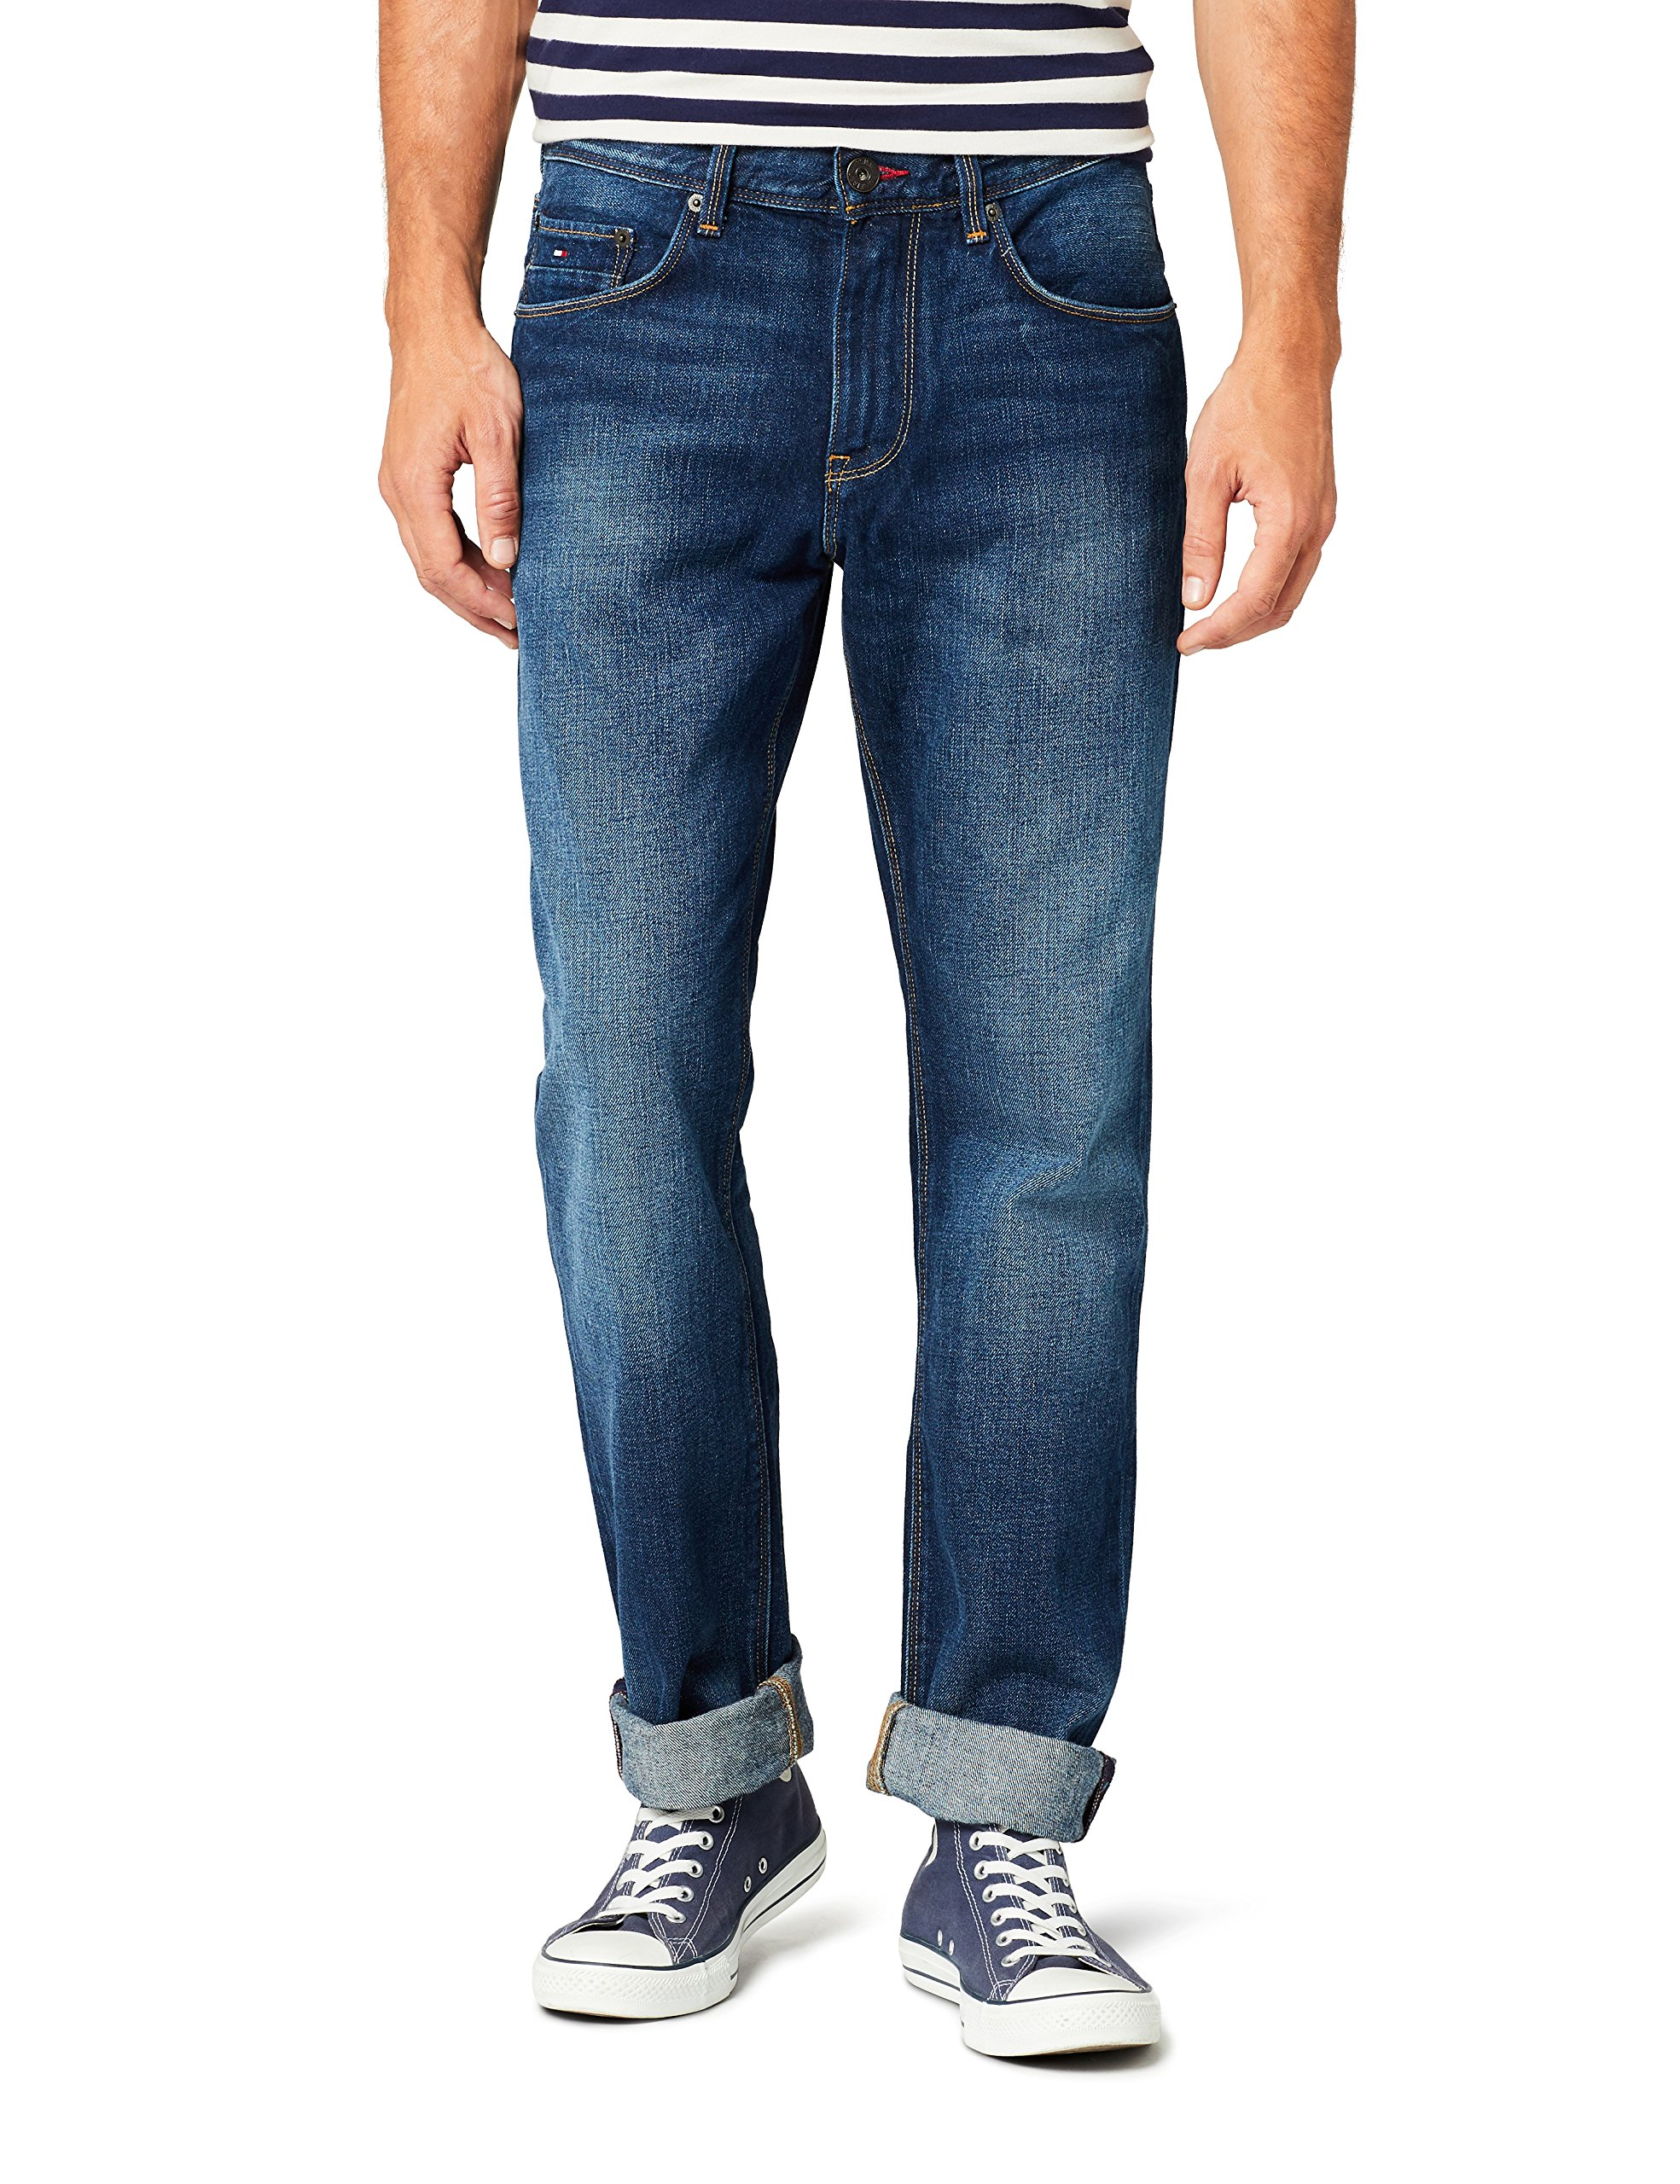 a17544e41c01 Amazon.it  Jeans uomo